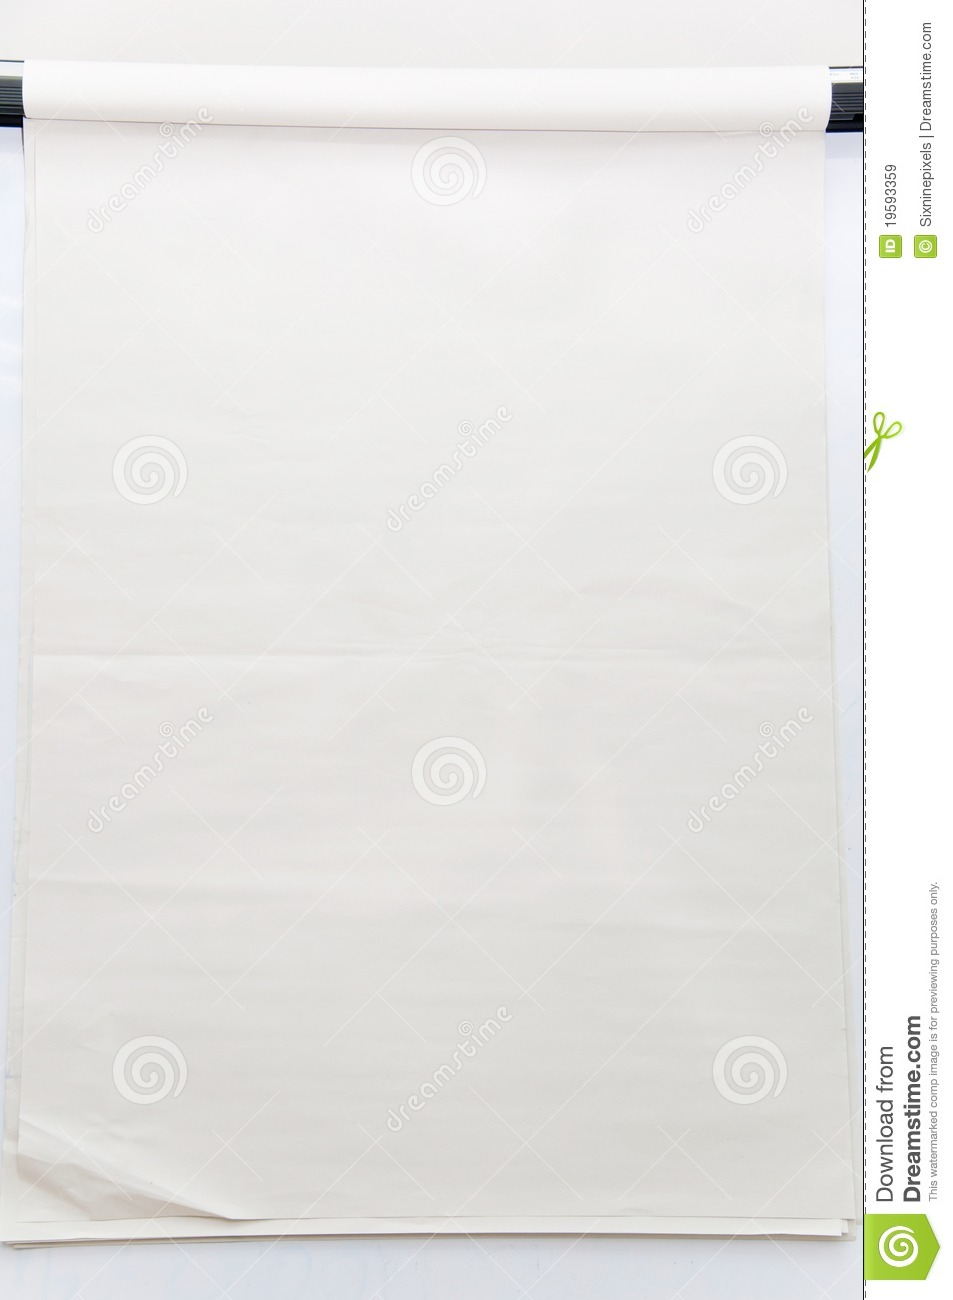 Flip Chart Royalty Free Stock Images Image 19593359